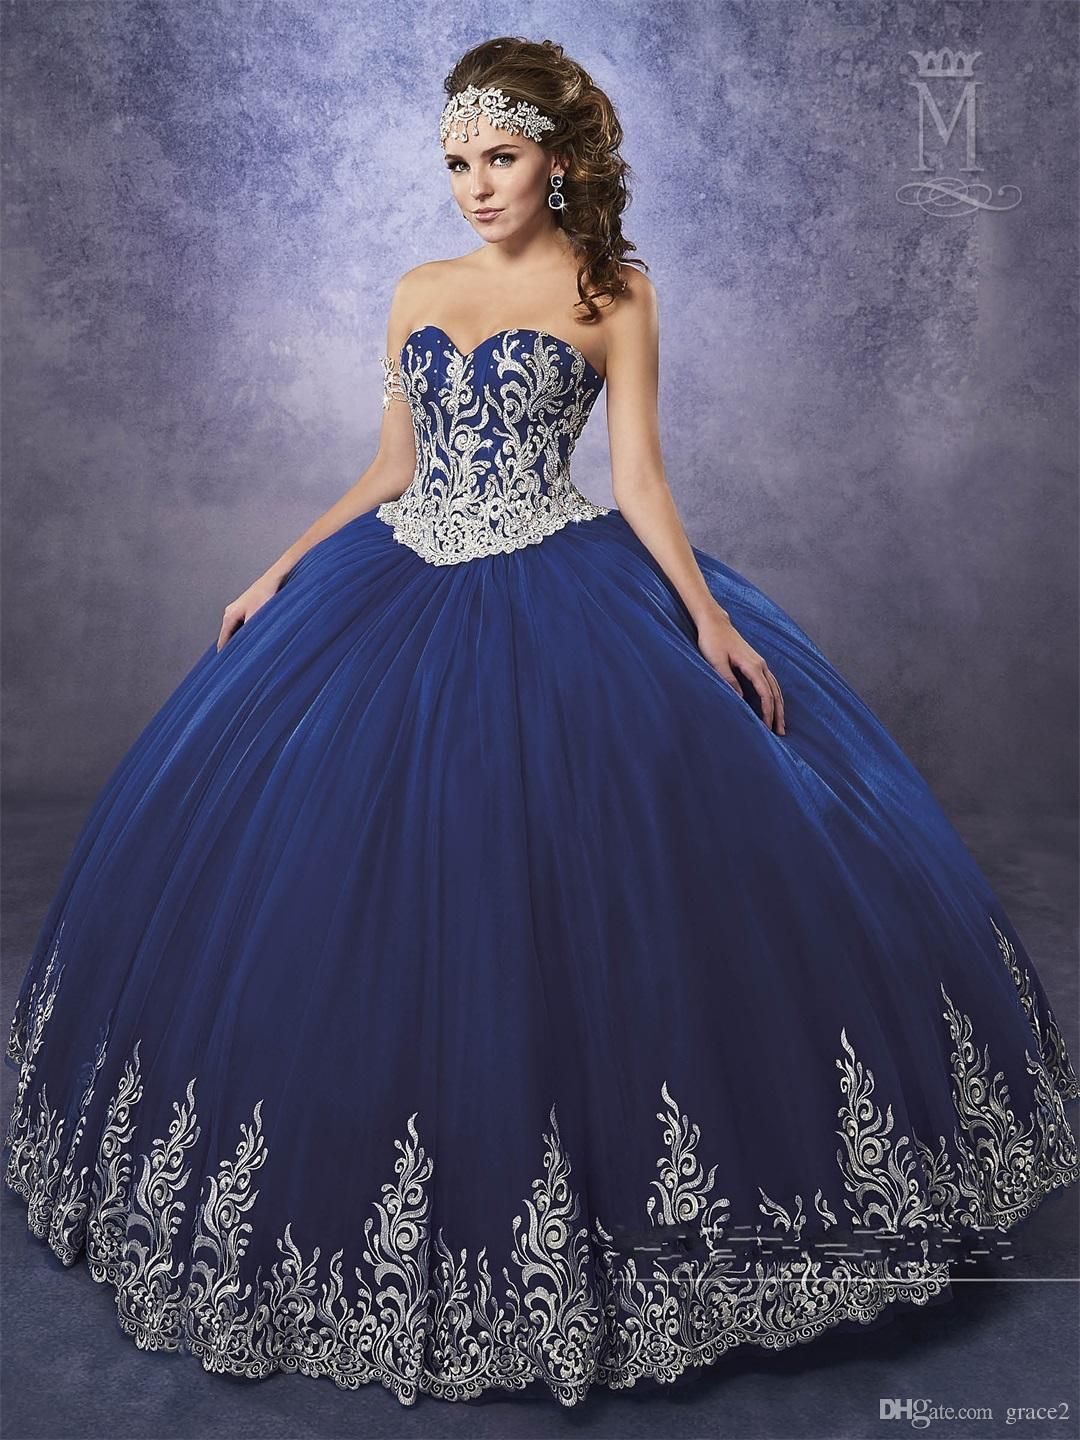 Dark Burgundy Quinceanera Dresses 2017 Mary s with Sheer Bolero And Lace Up  Back Appliques Royal Blue Sweet 16 Dress Custom Made Vestidos De 15 Anos ... 95c784632717